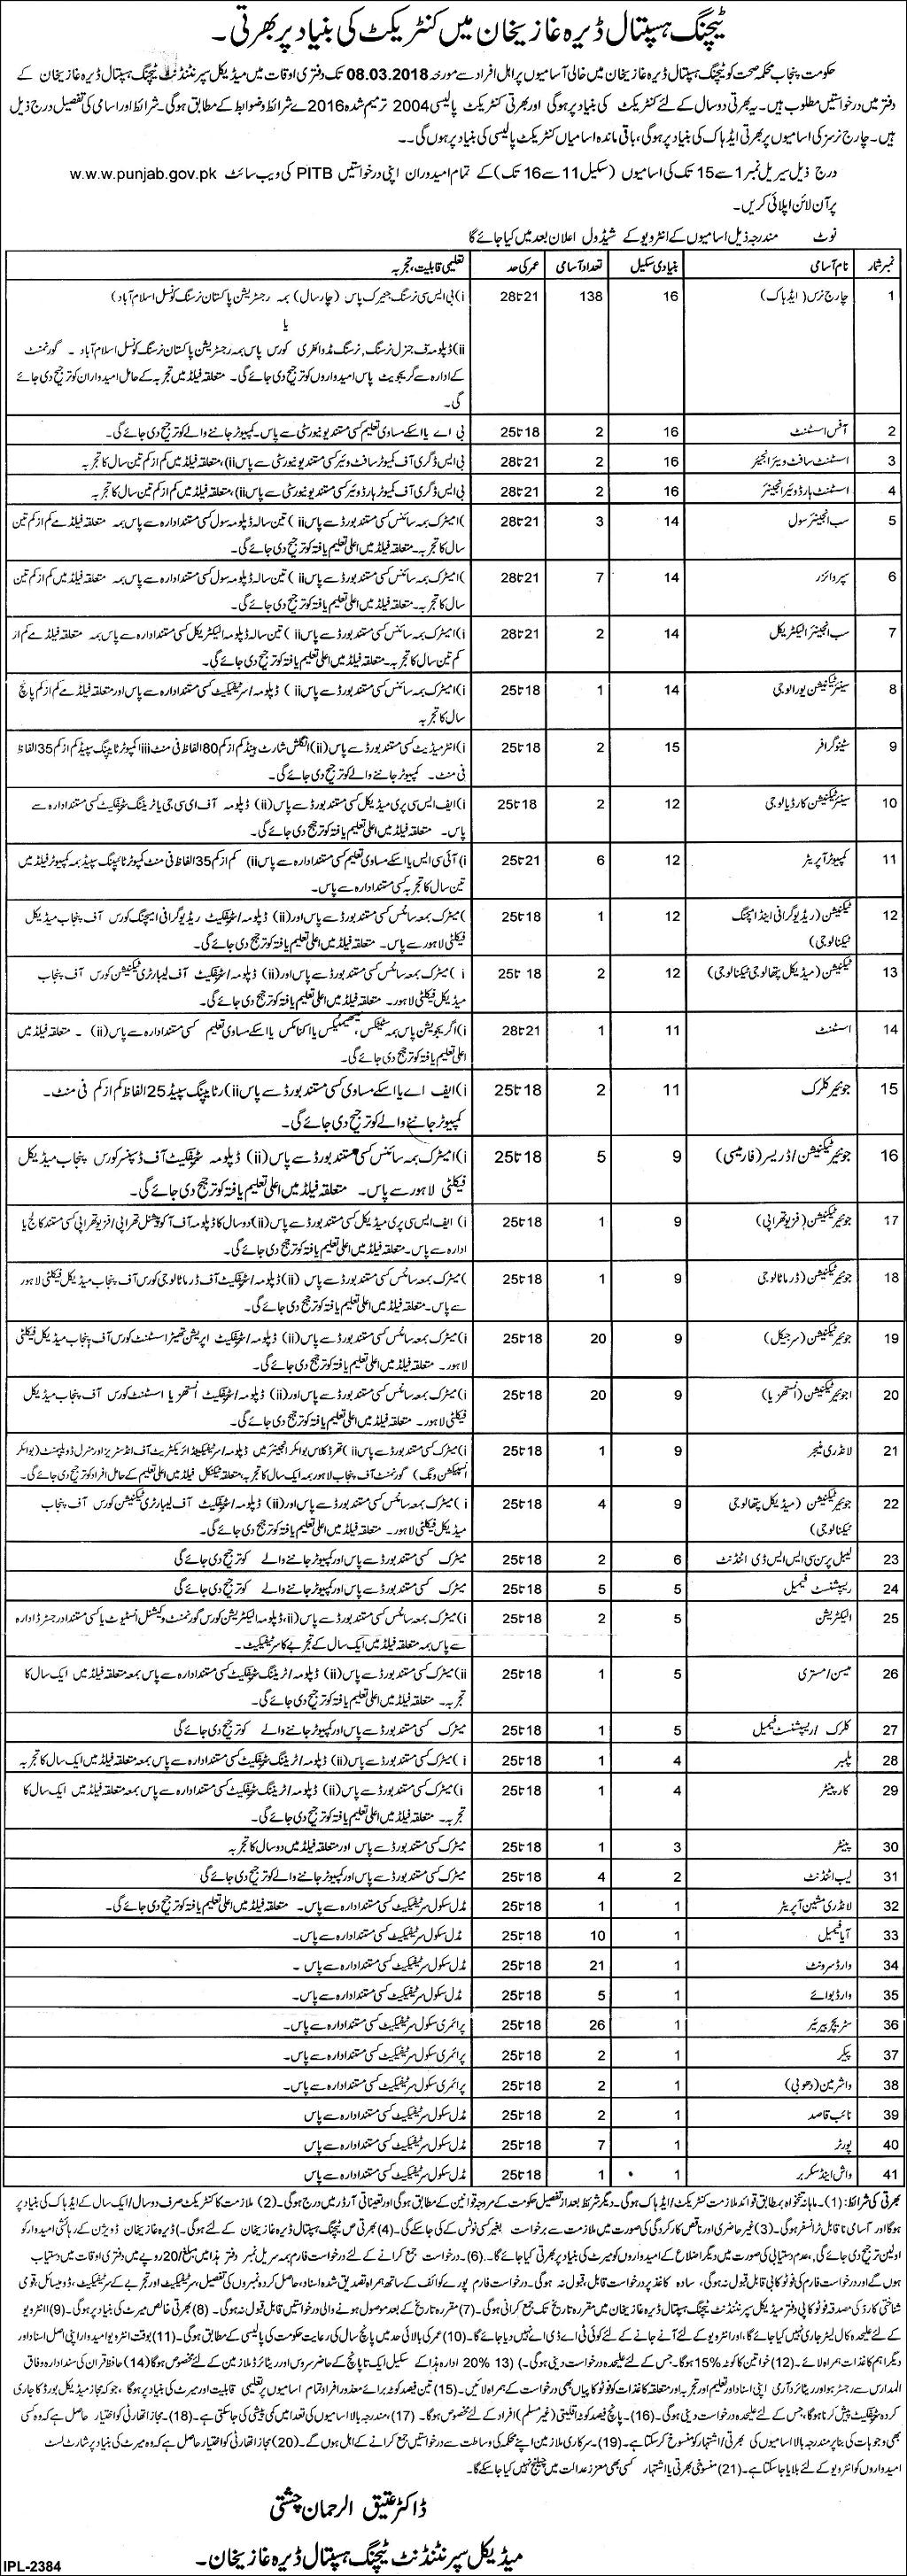 Teaching Hospital Dera Ghazi Khan 320 Jobs 24 February 2018 Daily Express Newspaper